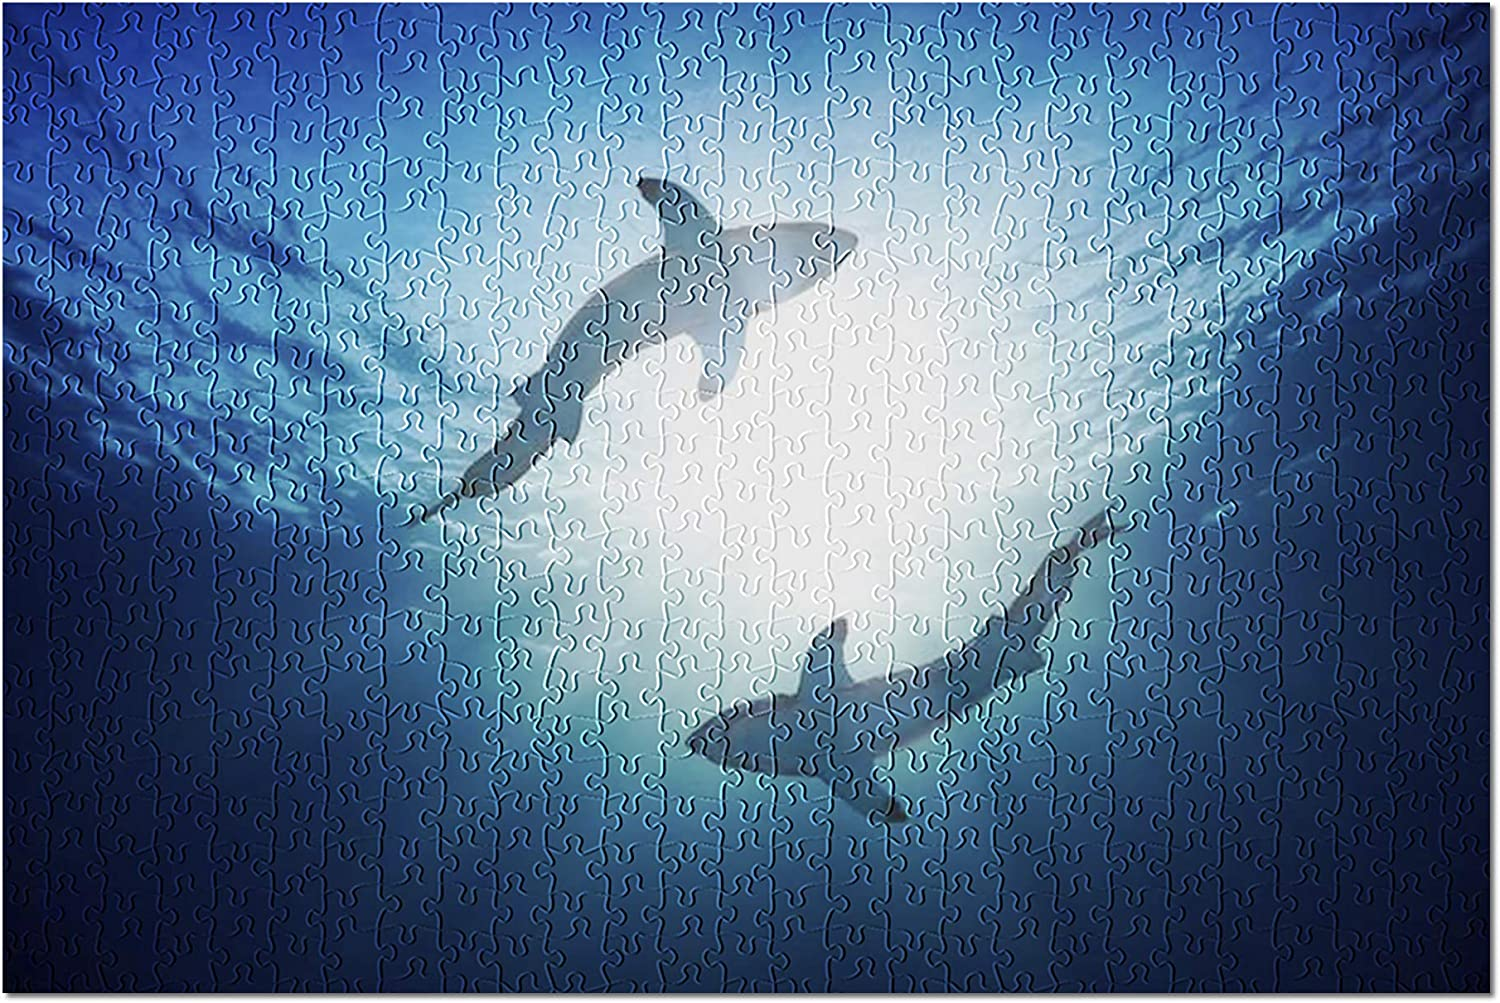 Great White Sharks by Surface of Water, View from Below 9004320 (Premium 500 Piece Jigsaw Puzzle for Adults, 13x19, Made in USA!)